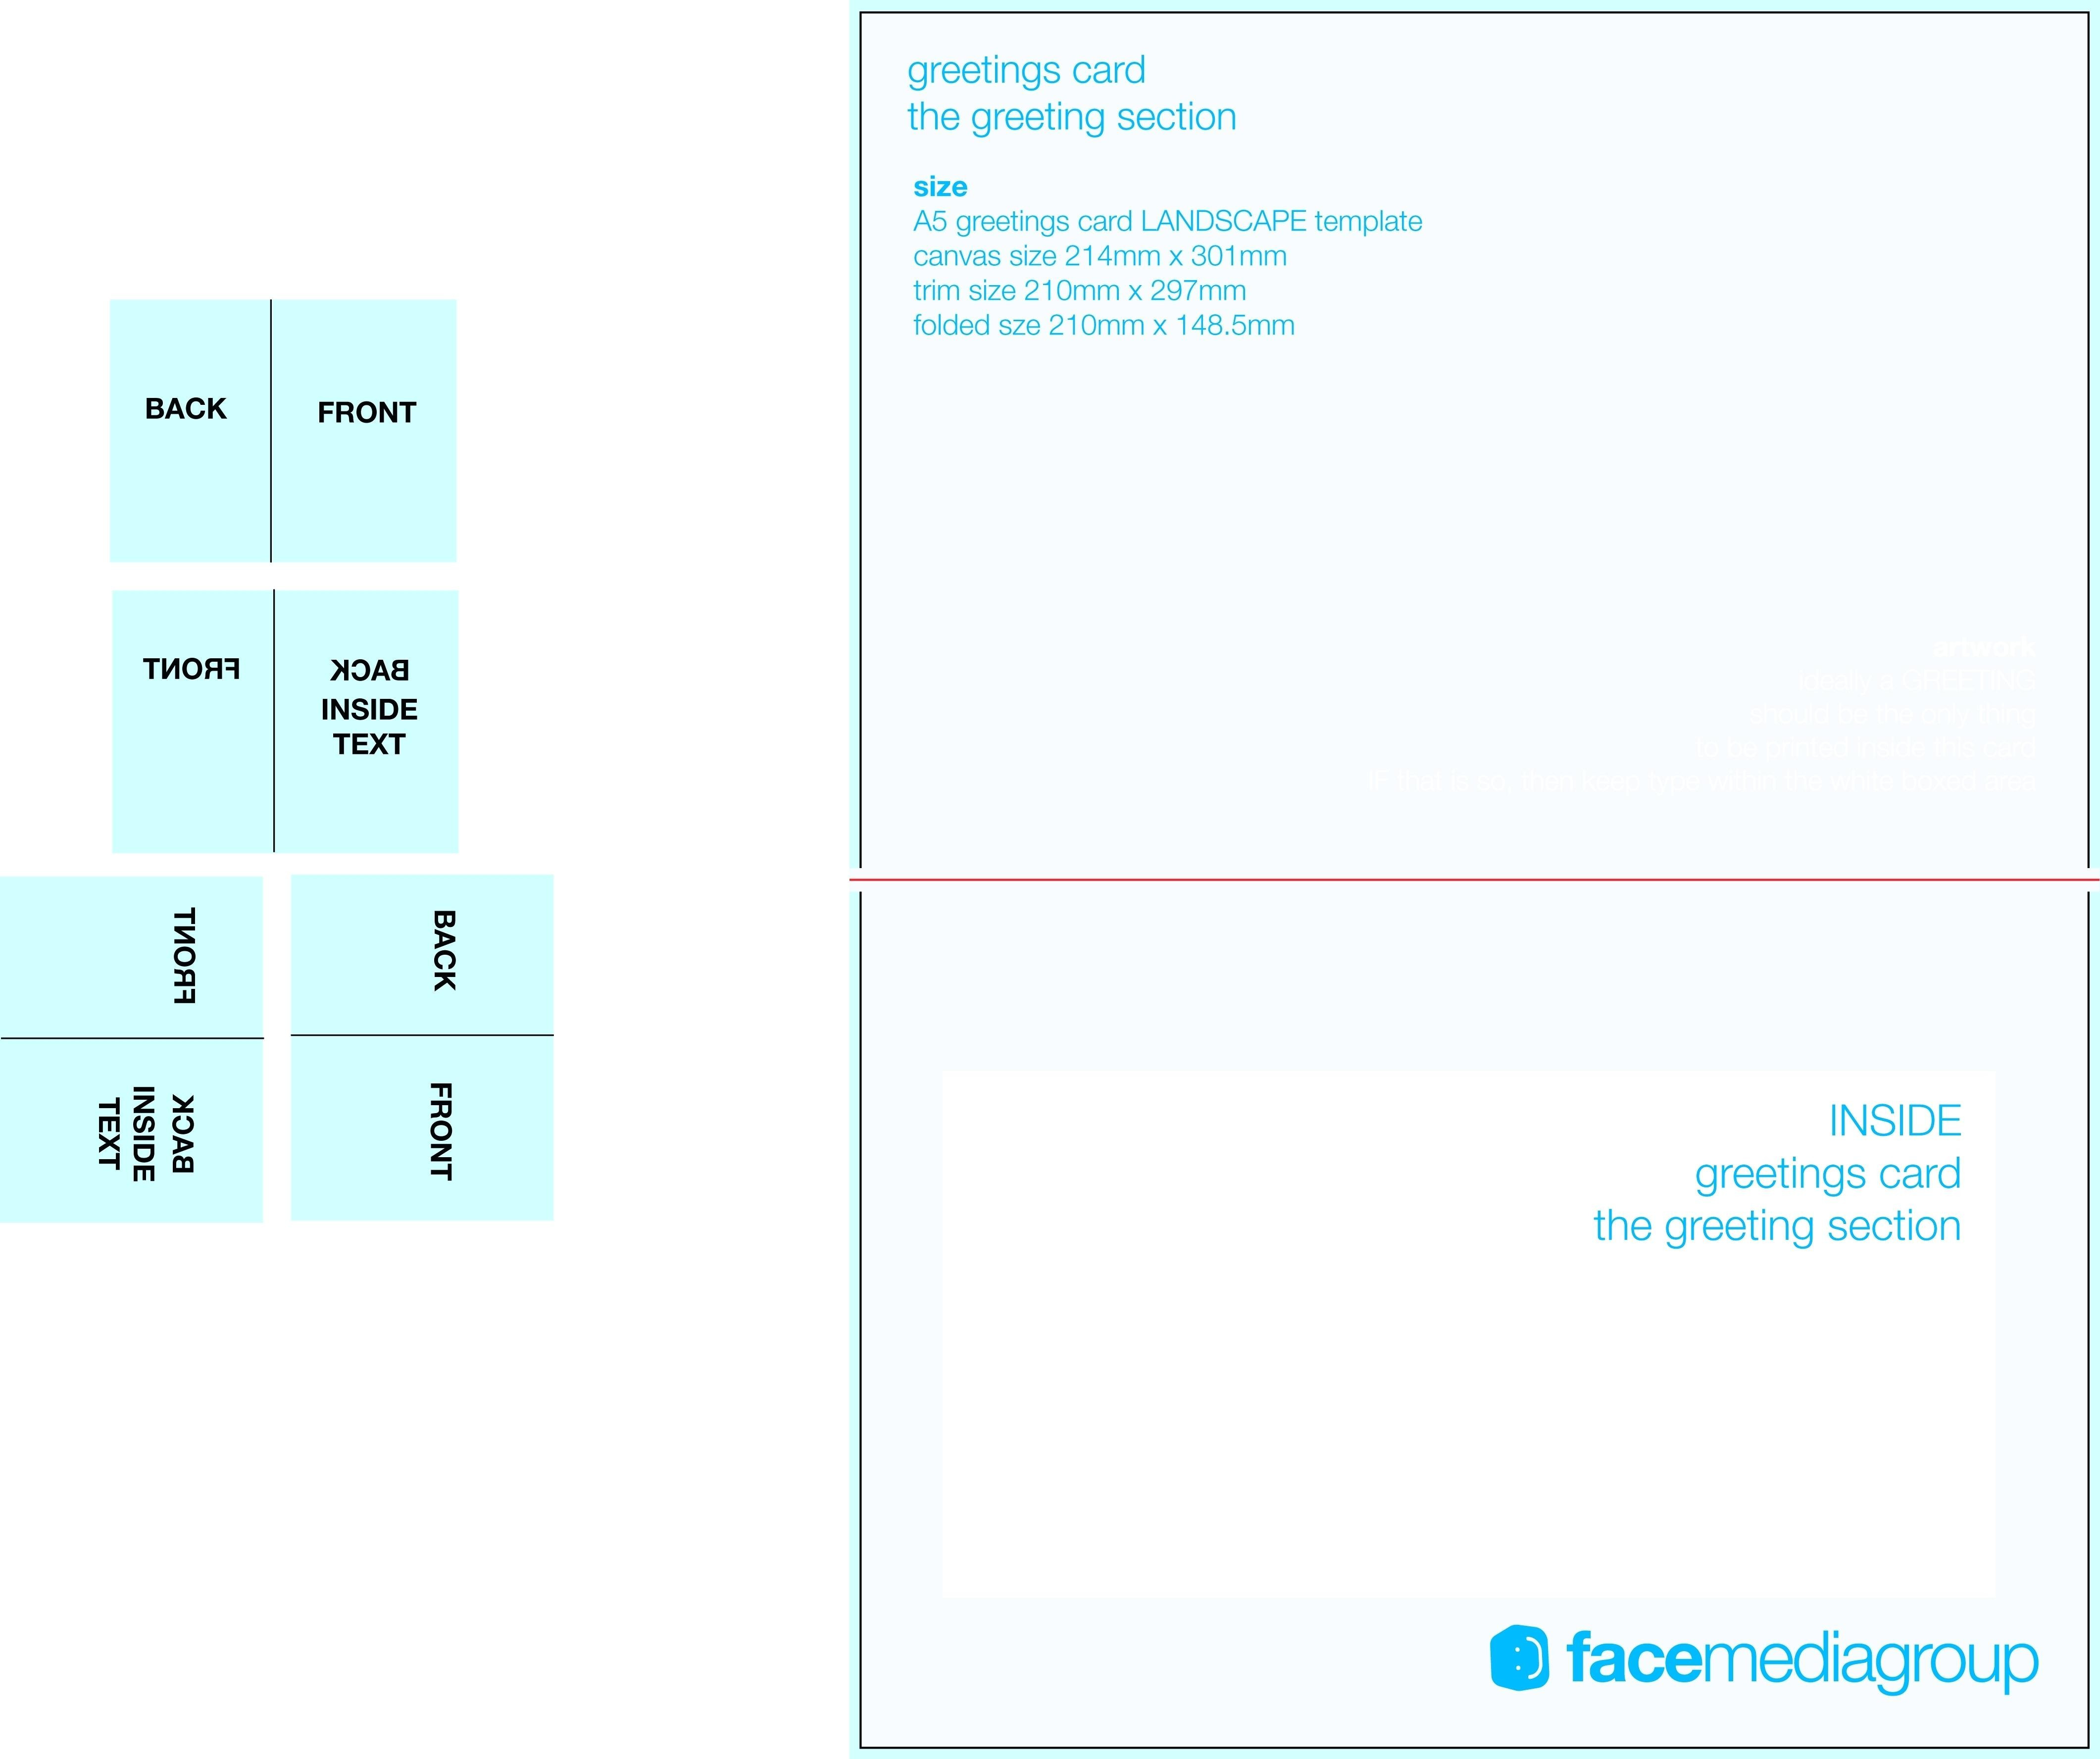 birthday card template word 2010 ; birthday-card-template-microsoft-word-2010-awesome-delighted-word-templates-business-cards-s-business-card-ideas-pics-of-birthday-card-template-microsoft-word-2010